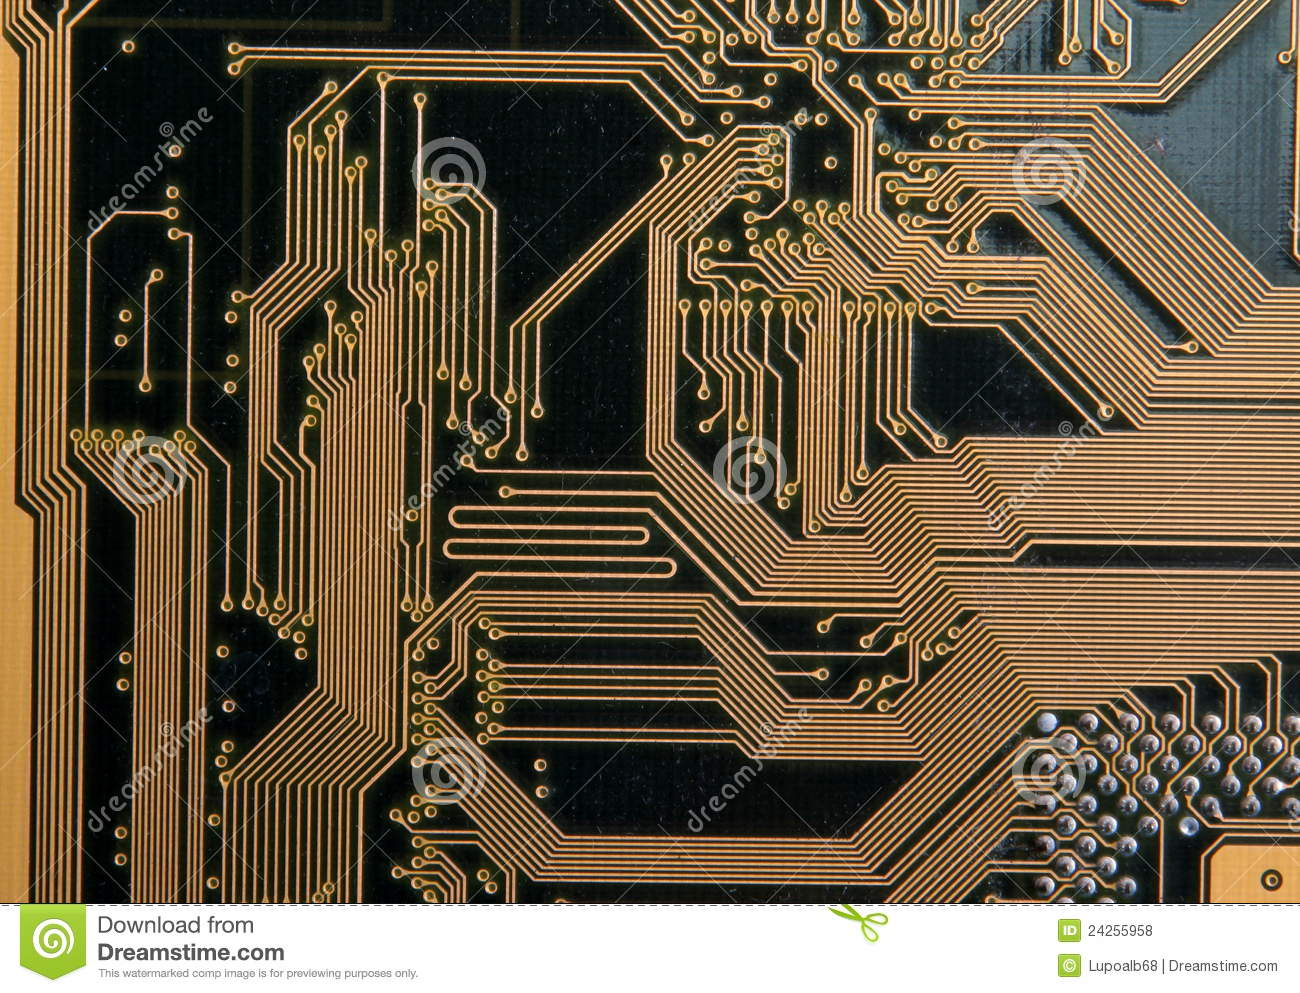 Circuits Stock Photos Royalty Free Images Dreamstime Or Photo Of Computer Electronic Circuit Cpu Board Breaking Binary Code And Integrated Electronics The Close Up